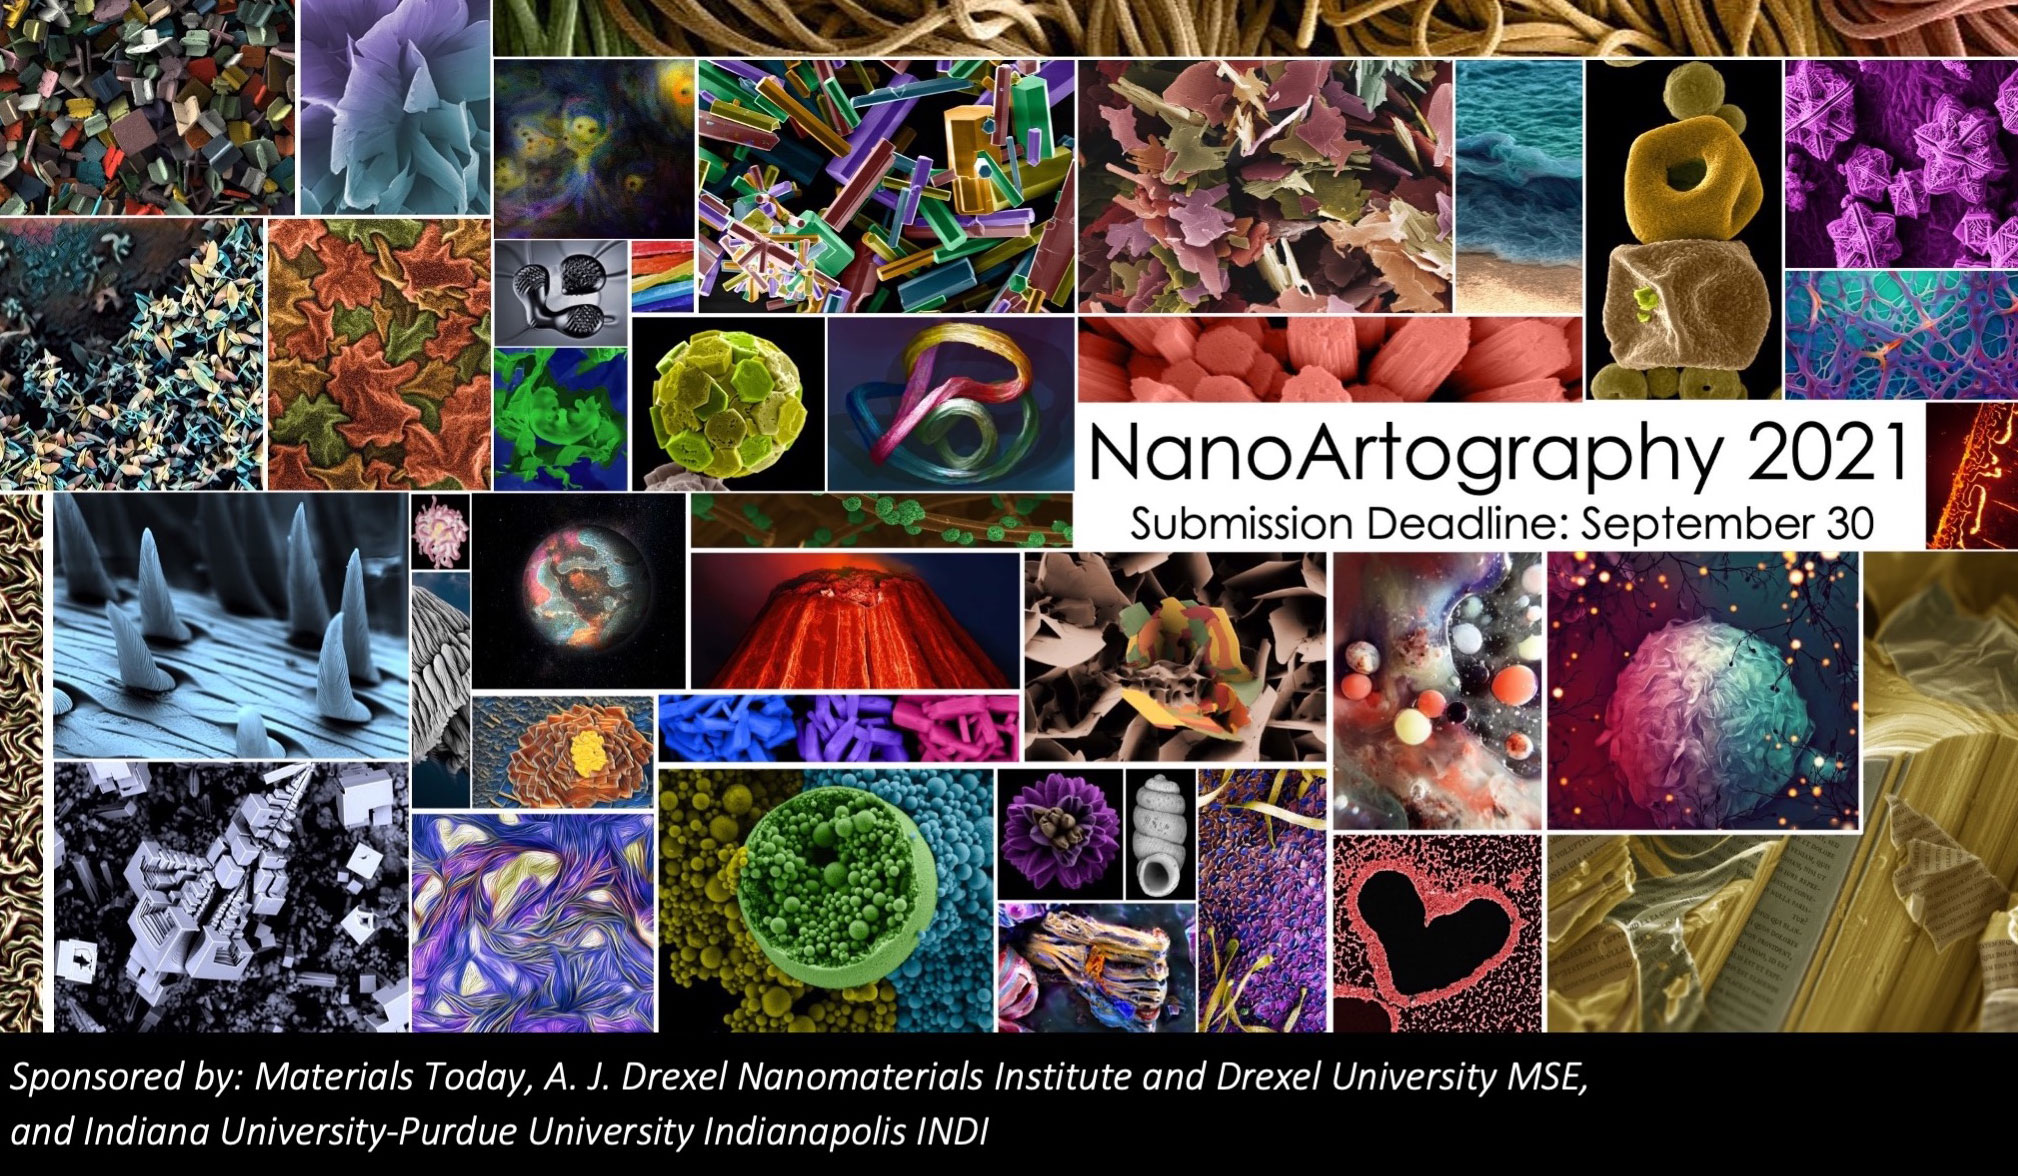 NanoArtography2021 Is Open for Submission